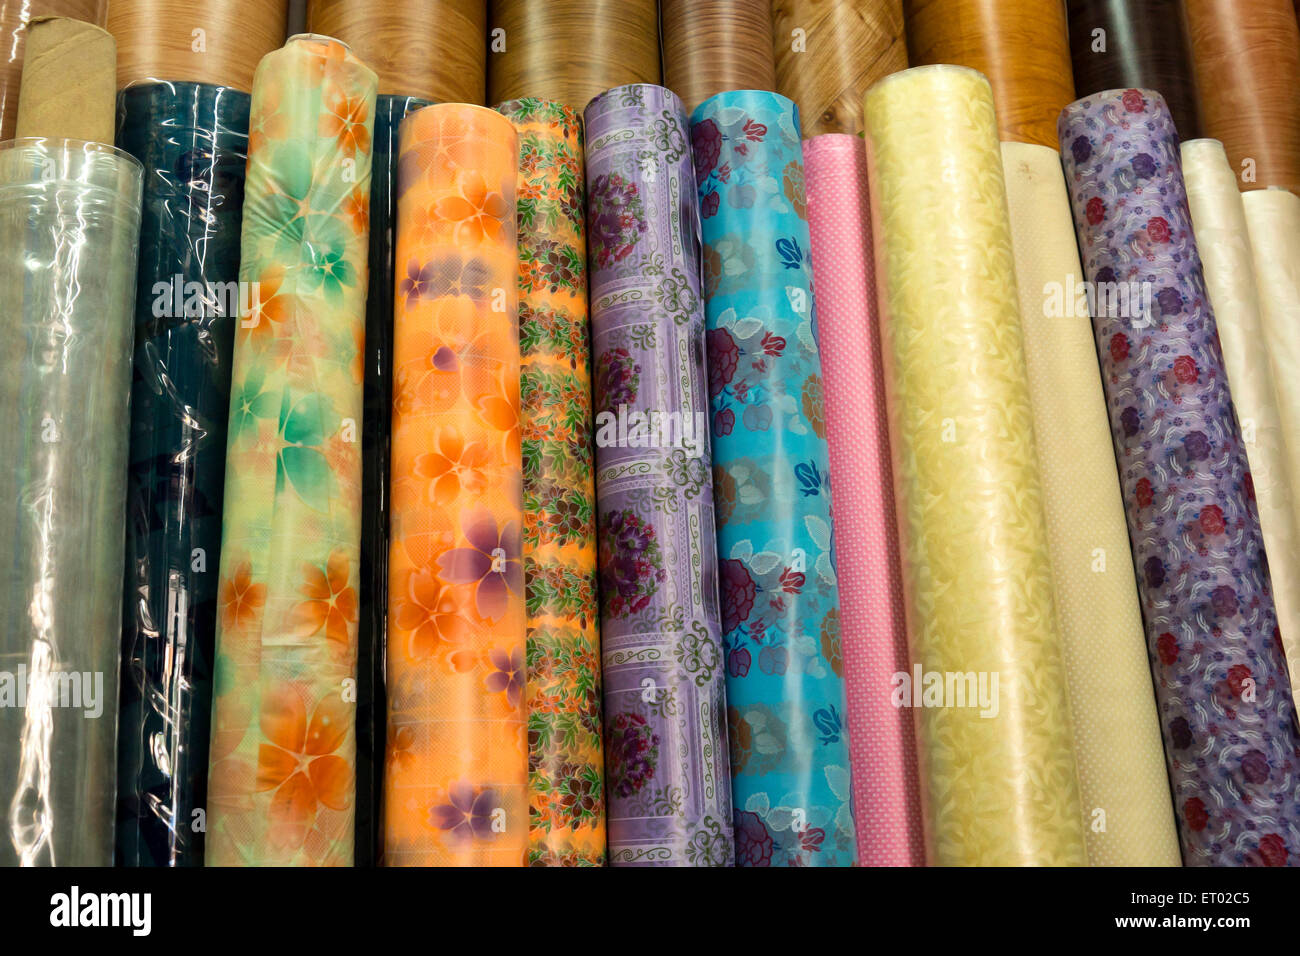 PVC Shower Curtain rolls India Asia - Stock Image